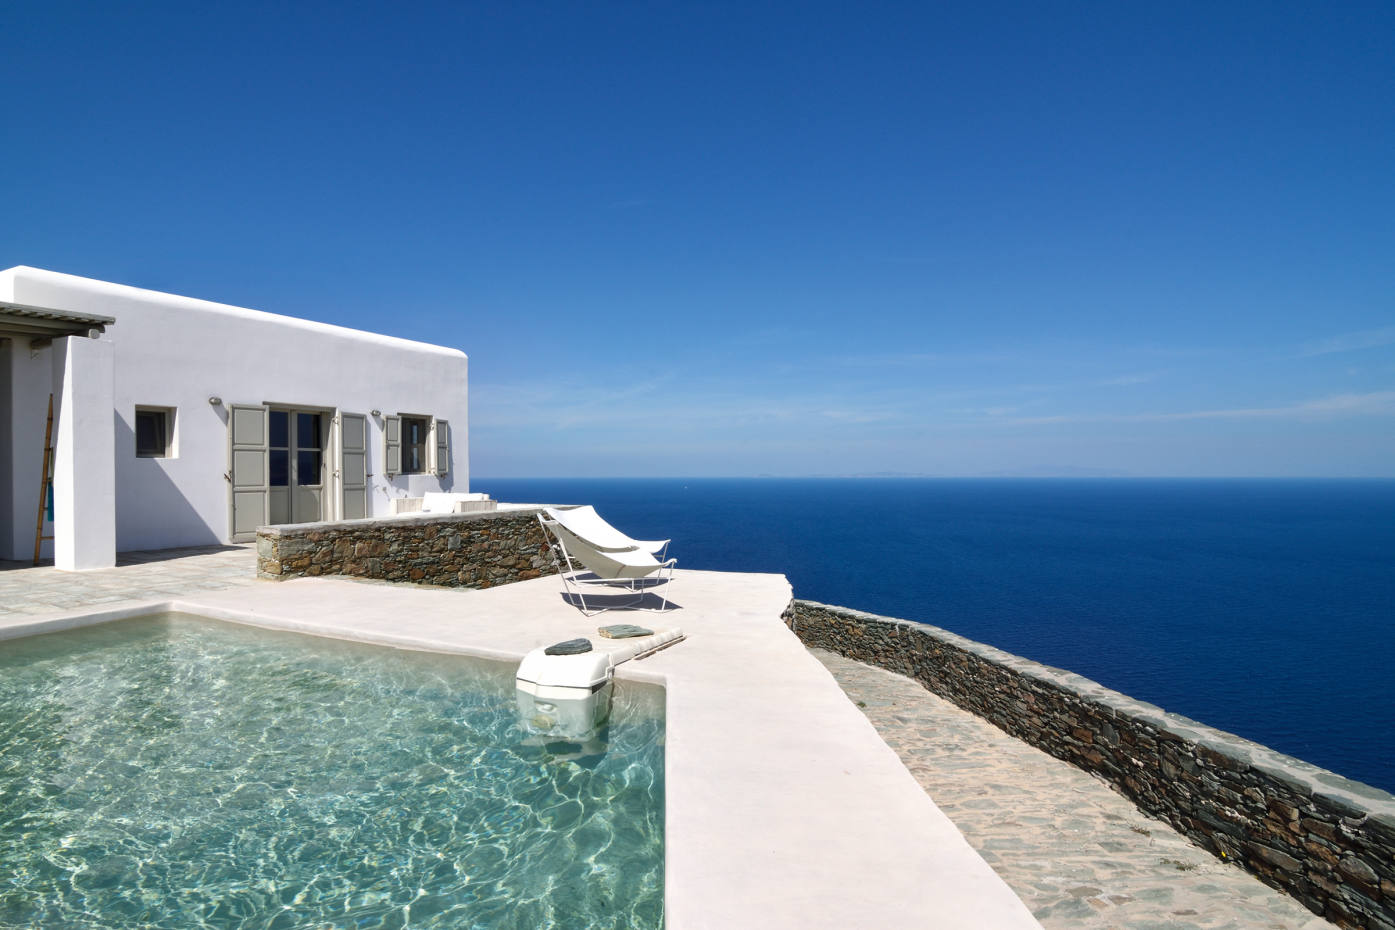 This charming property on Folegandros is the only rental villa on this relatively undiscovered Greekisland with aprivate pool